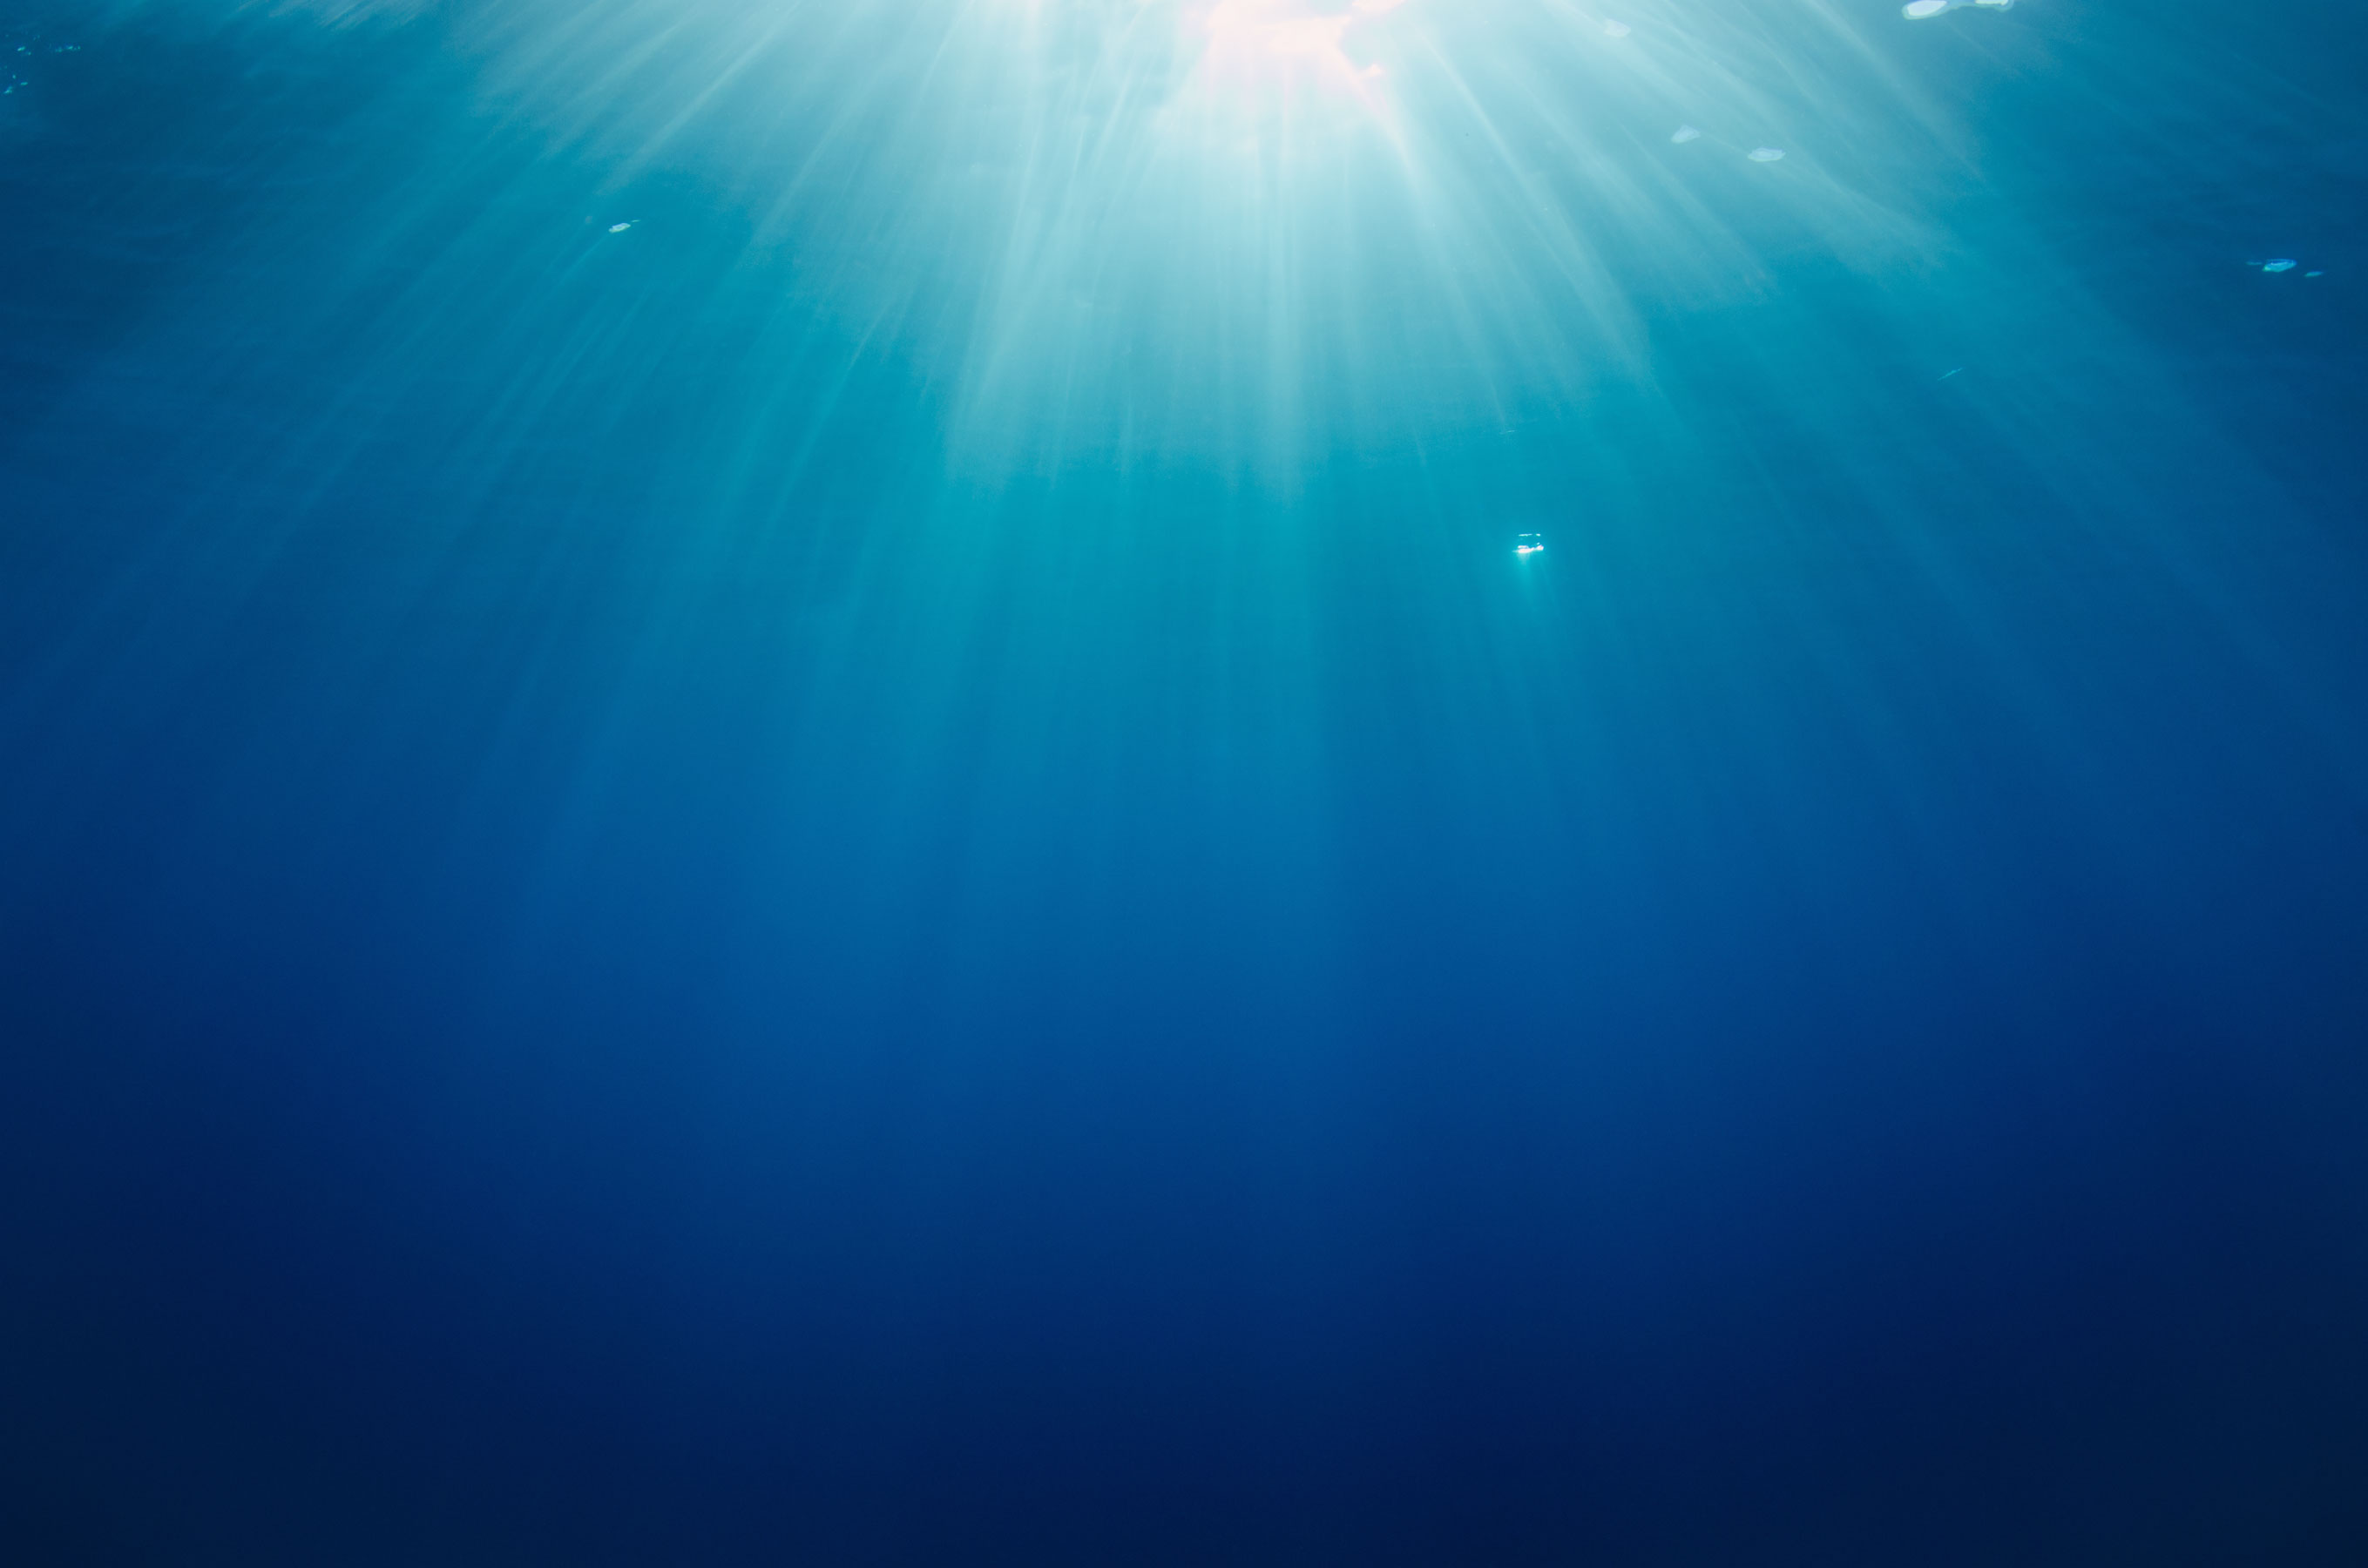 Light in the ocean